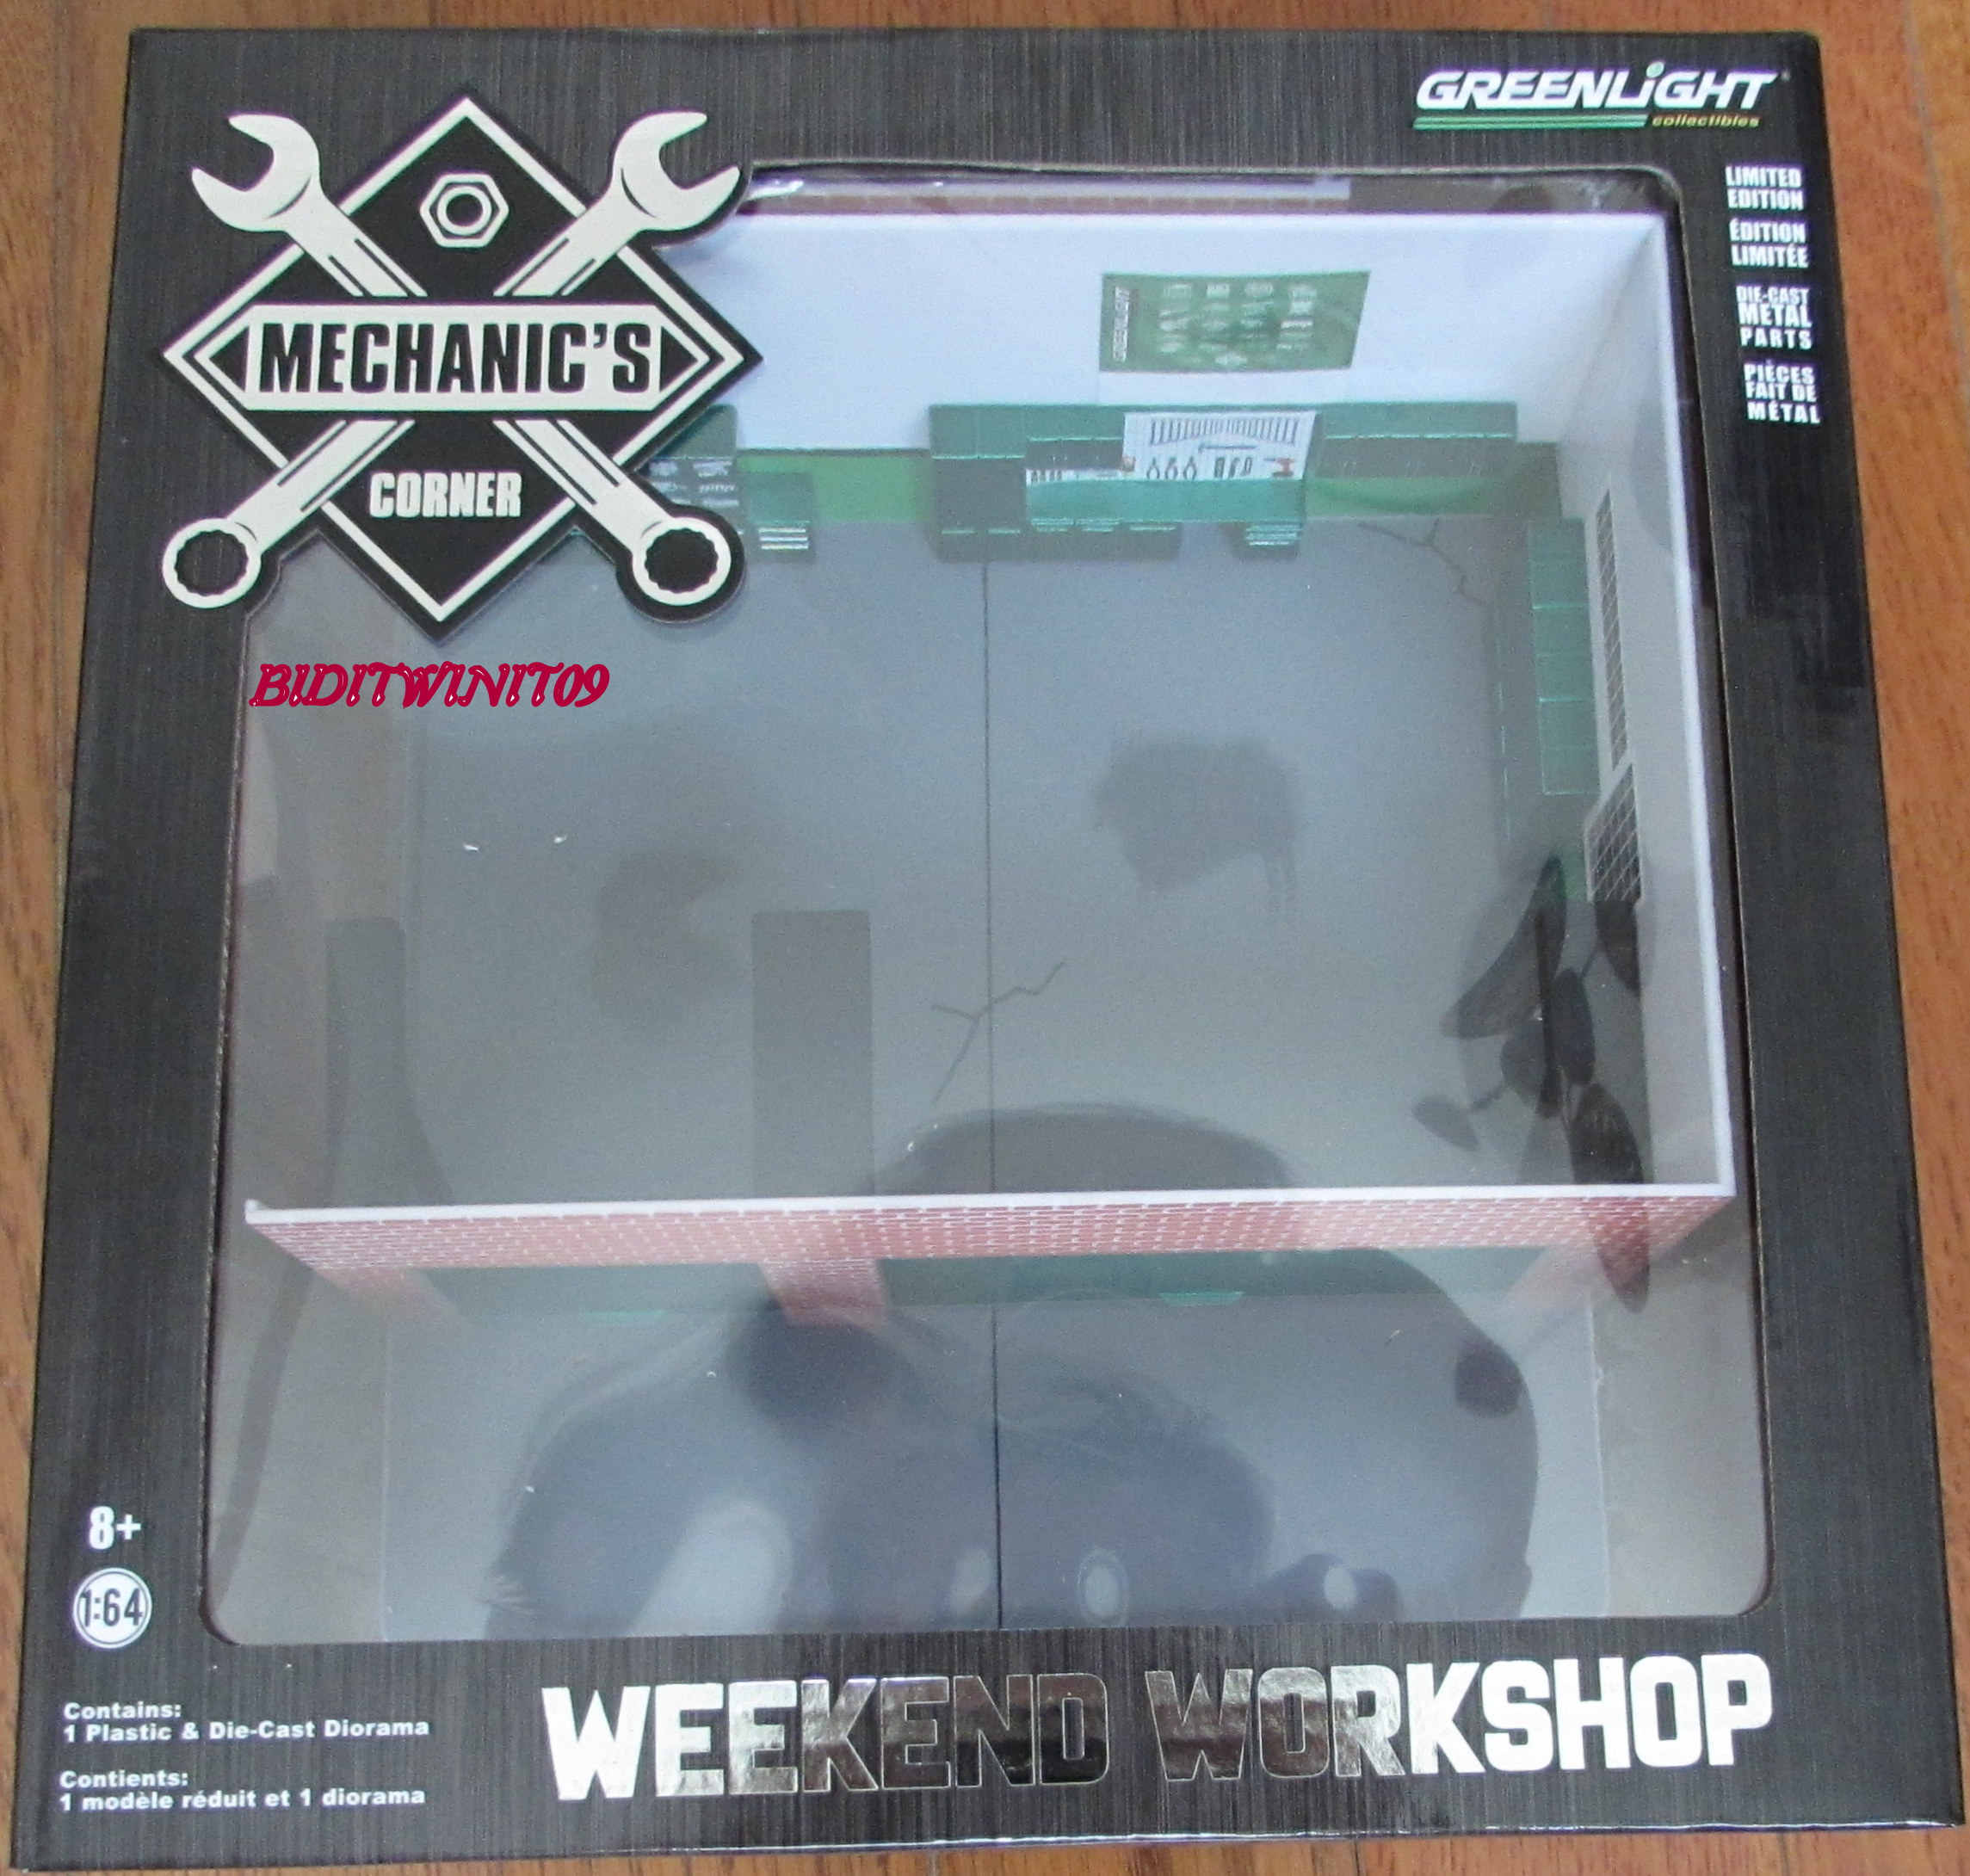 GREENLIGHT MECHANICS CORNER WEEKEND WORKSHOP MAN CAVE 1:64 GREEN MACHINE E+